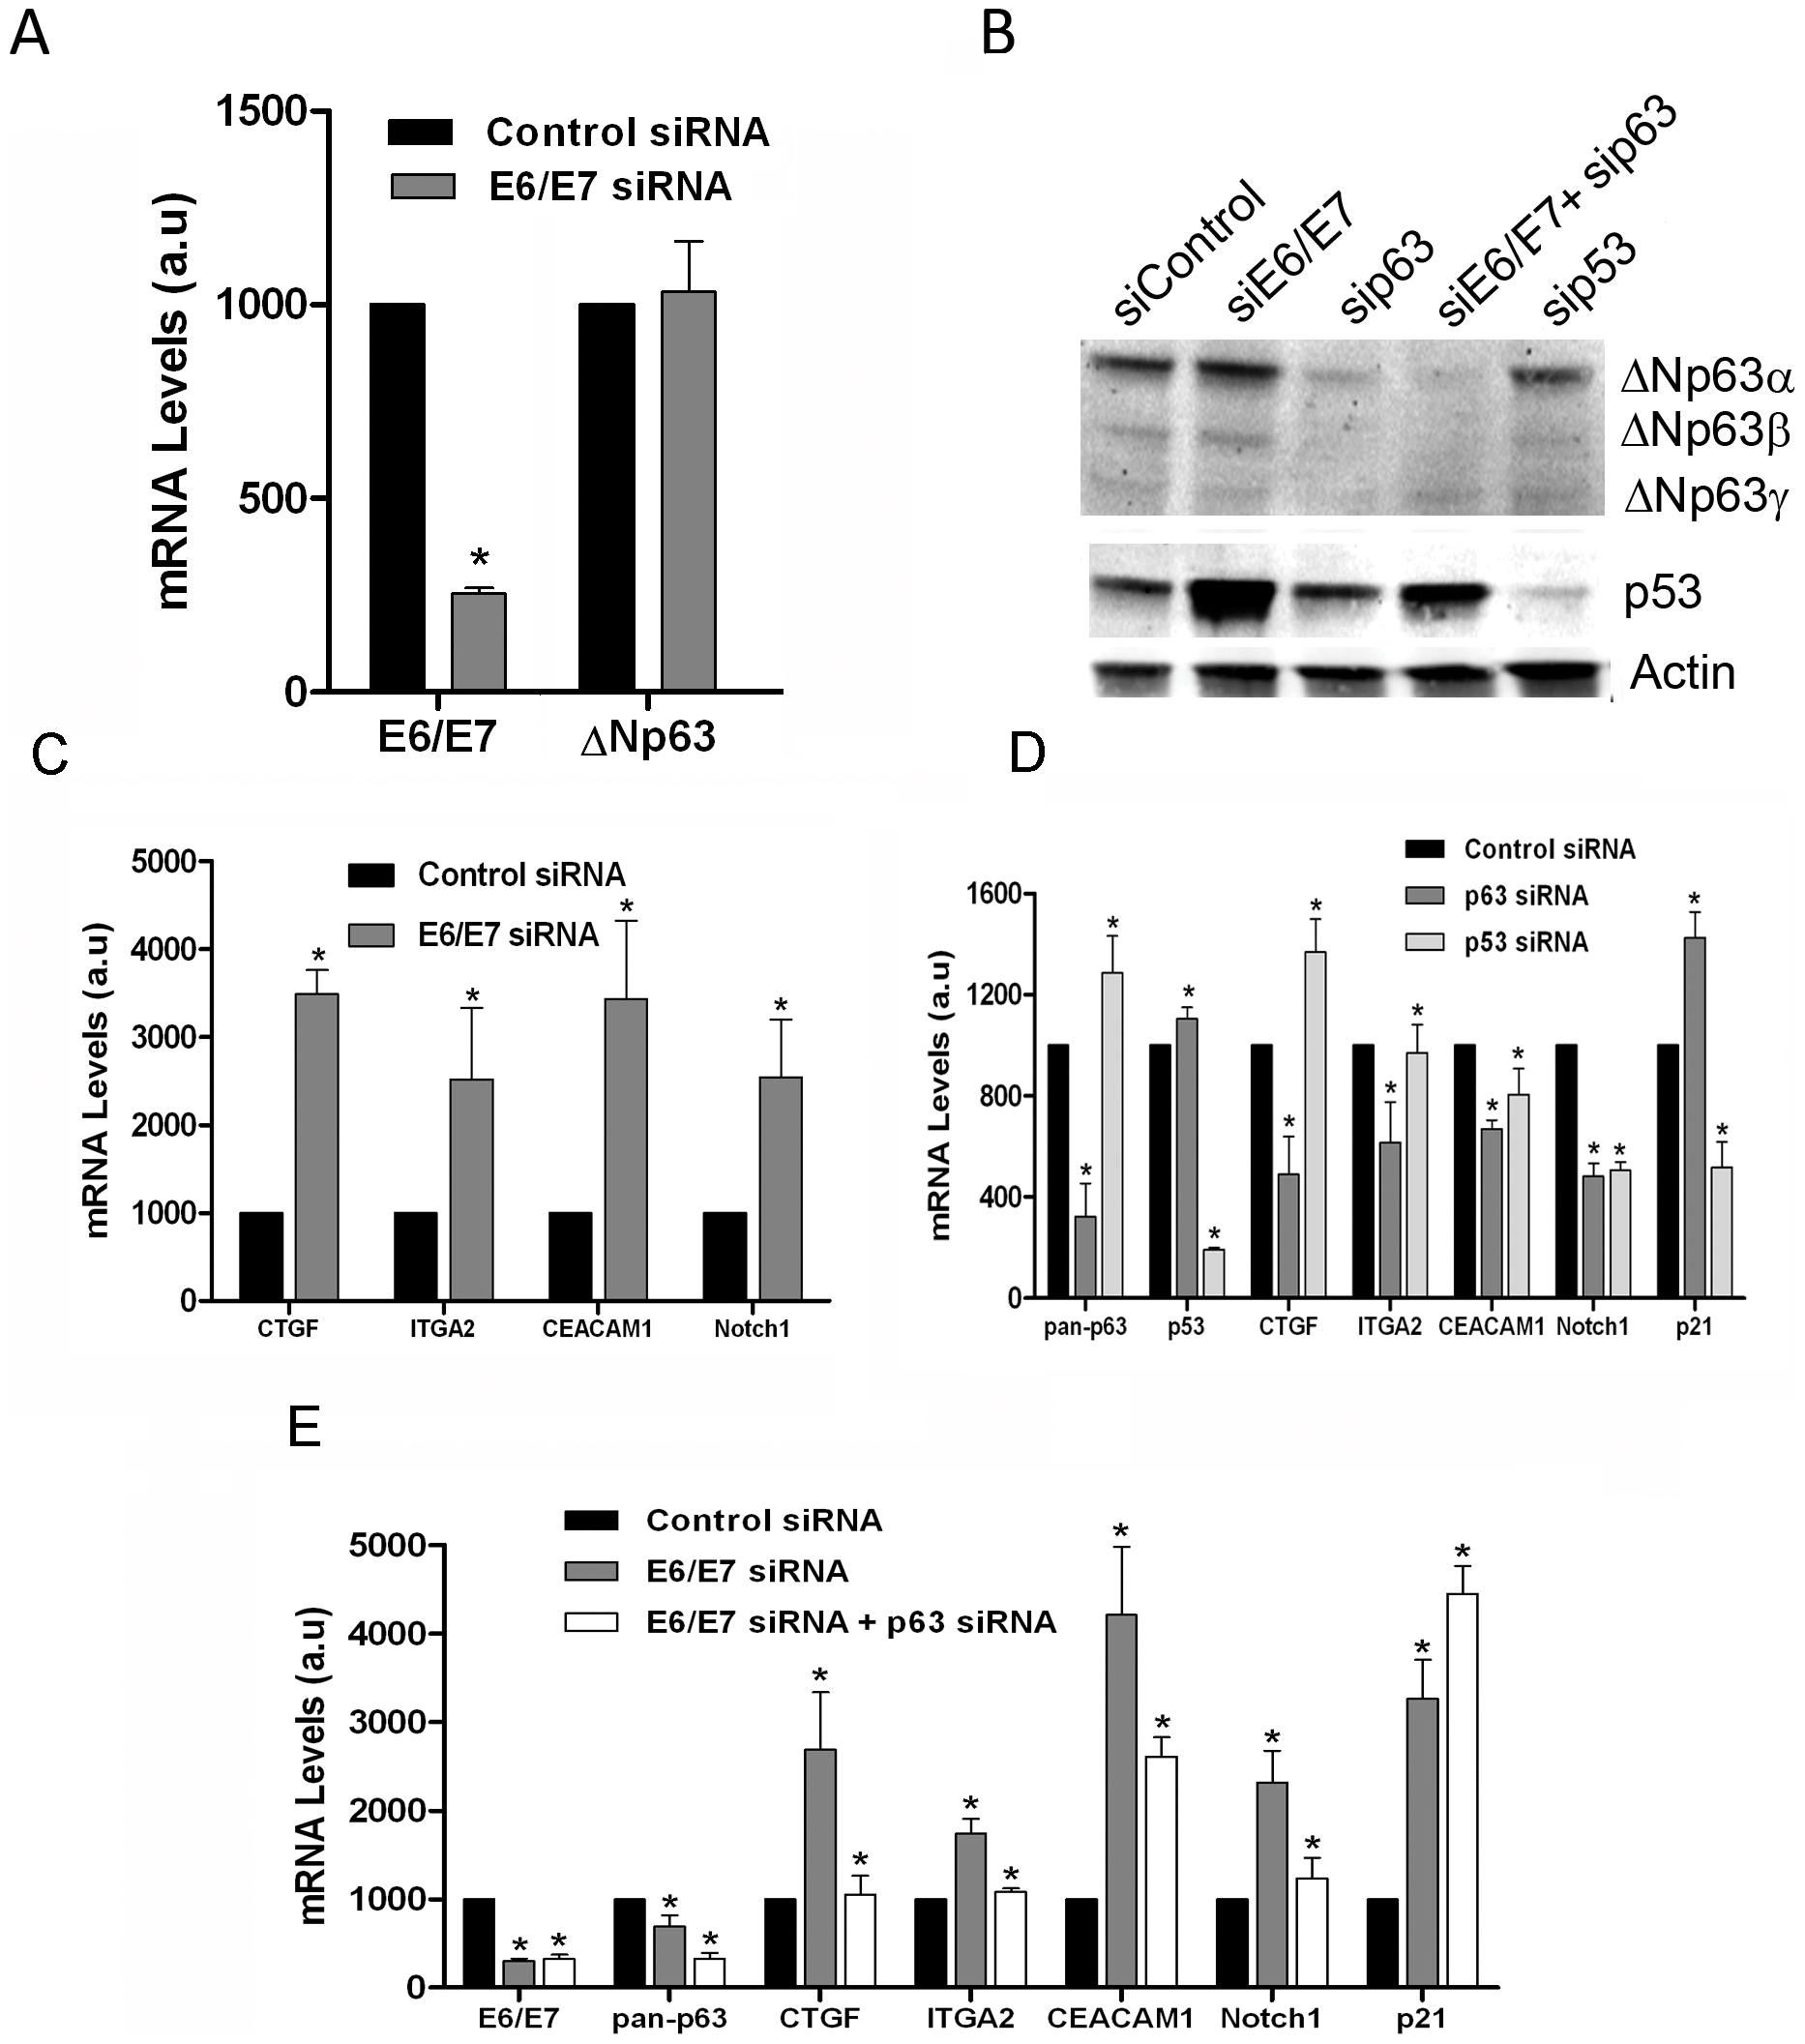 Modulation of a set of adhesion genes in Caski through E6/E7 silencing is dependent on p63.